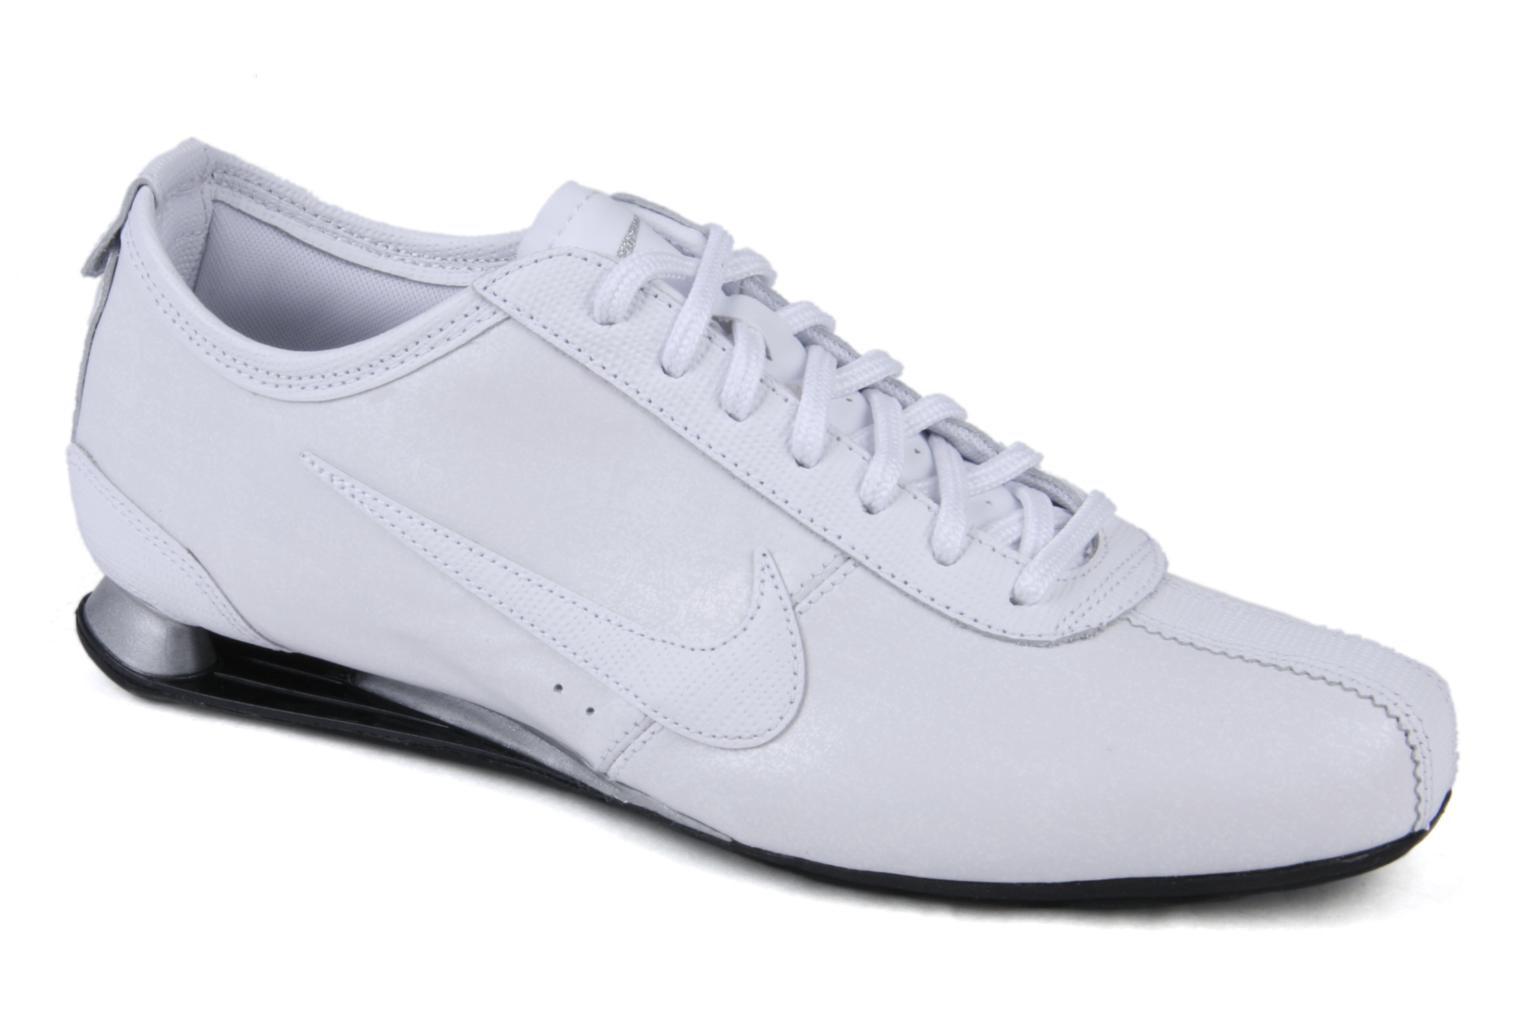 check out 3f06f a23f6 nike shox rivalry blanche,basket nike shox rivalry homme pas cher nike shox  rivalry sport 2000 nike